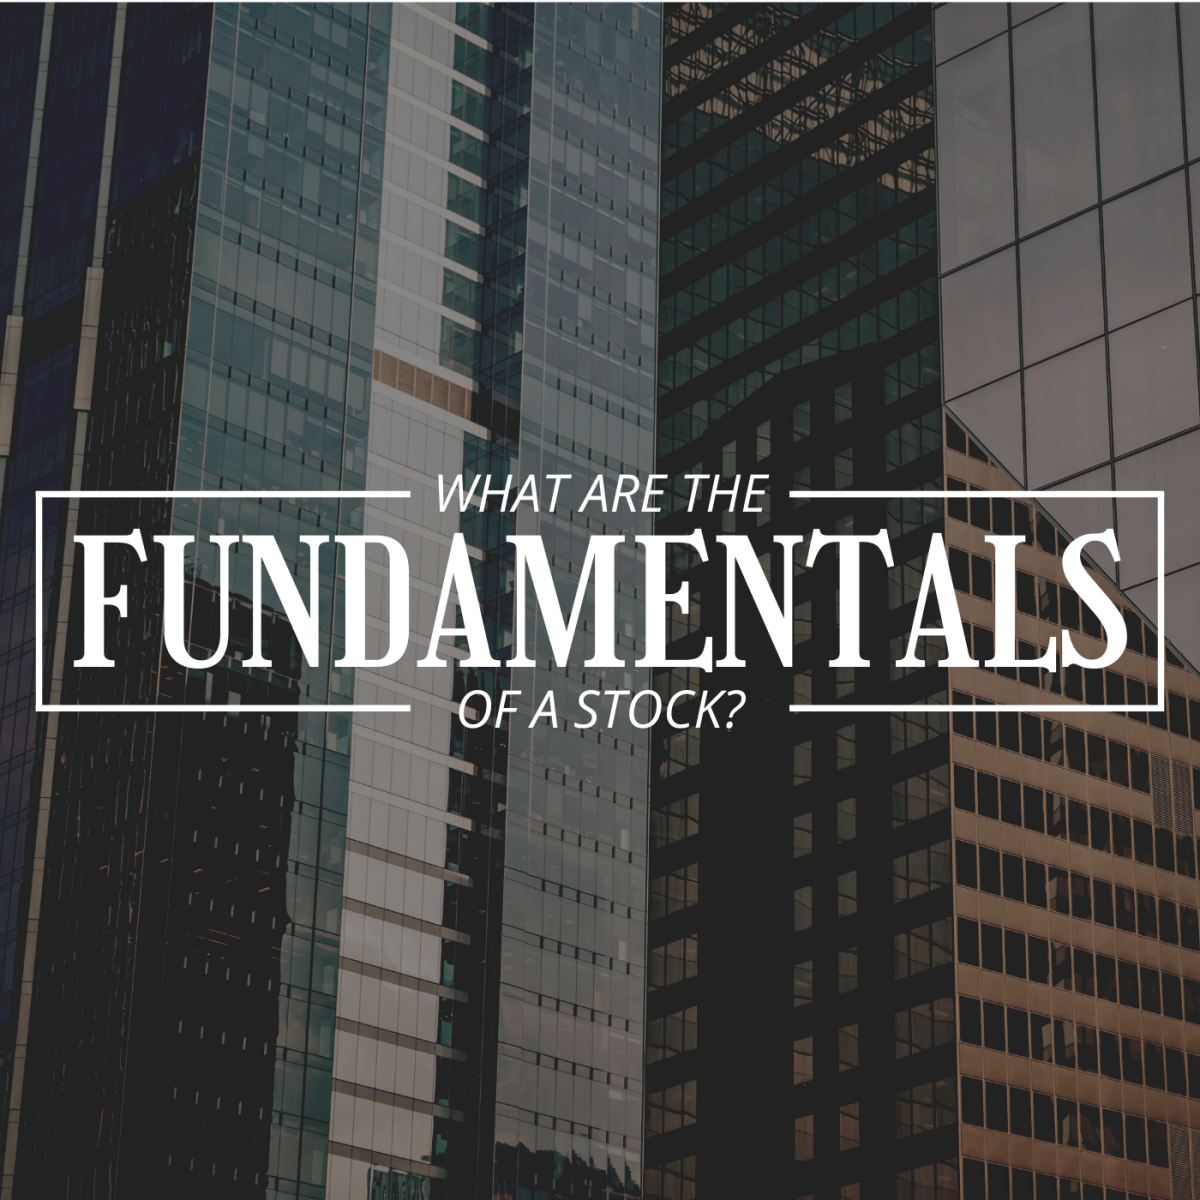 """Darkened photo of skyscraper windows in a city with text overlay that reads """"What Are the Fundamentals of a Stock?"""""""